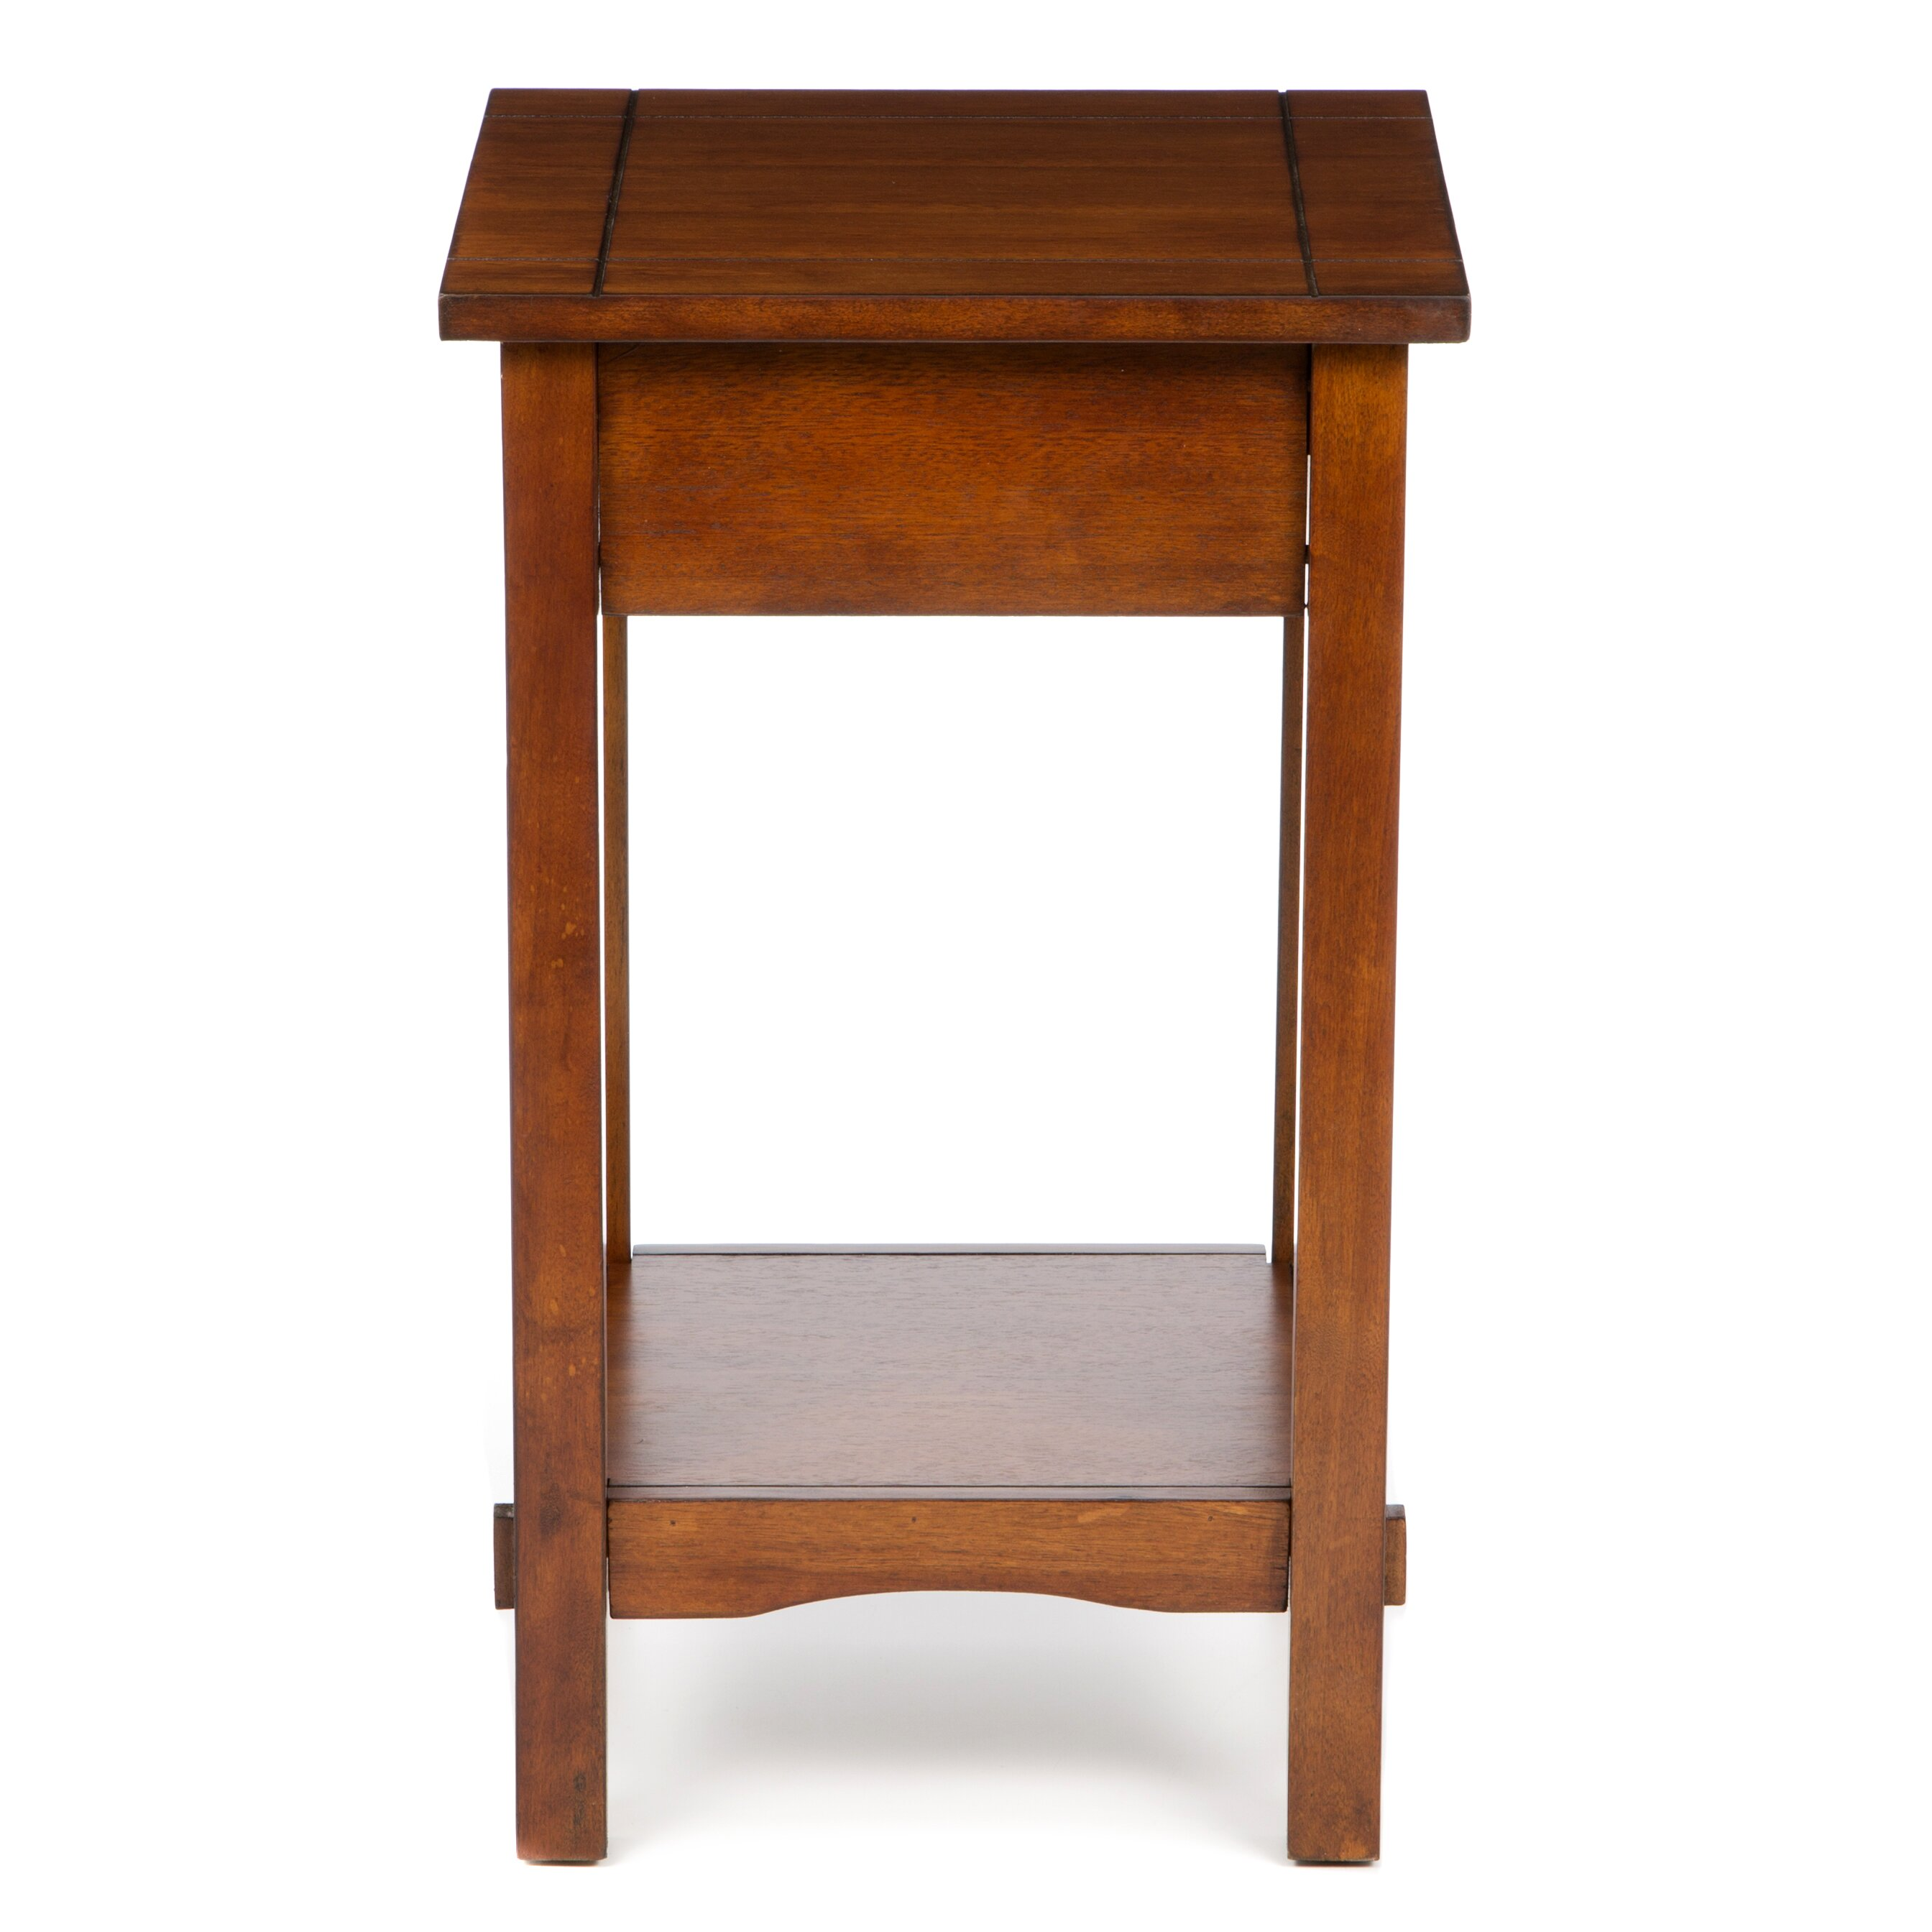 Charlton home oakcrest mission style end table reviews for Html table style